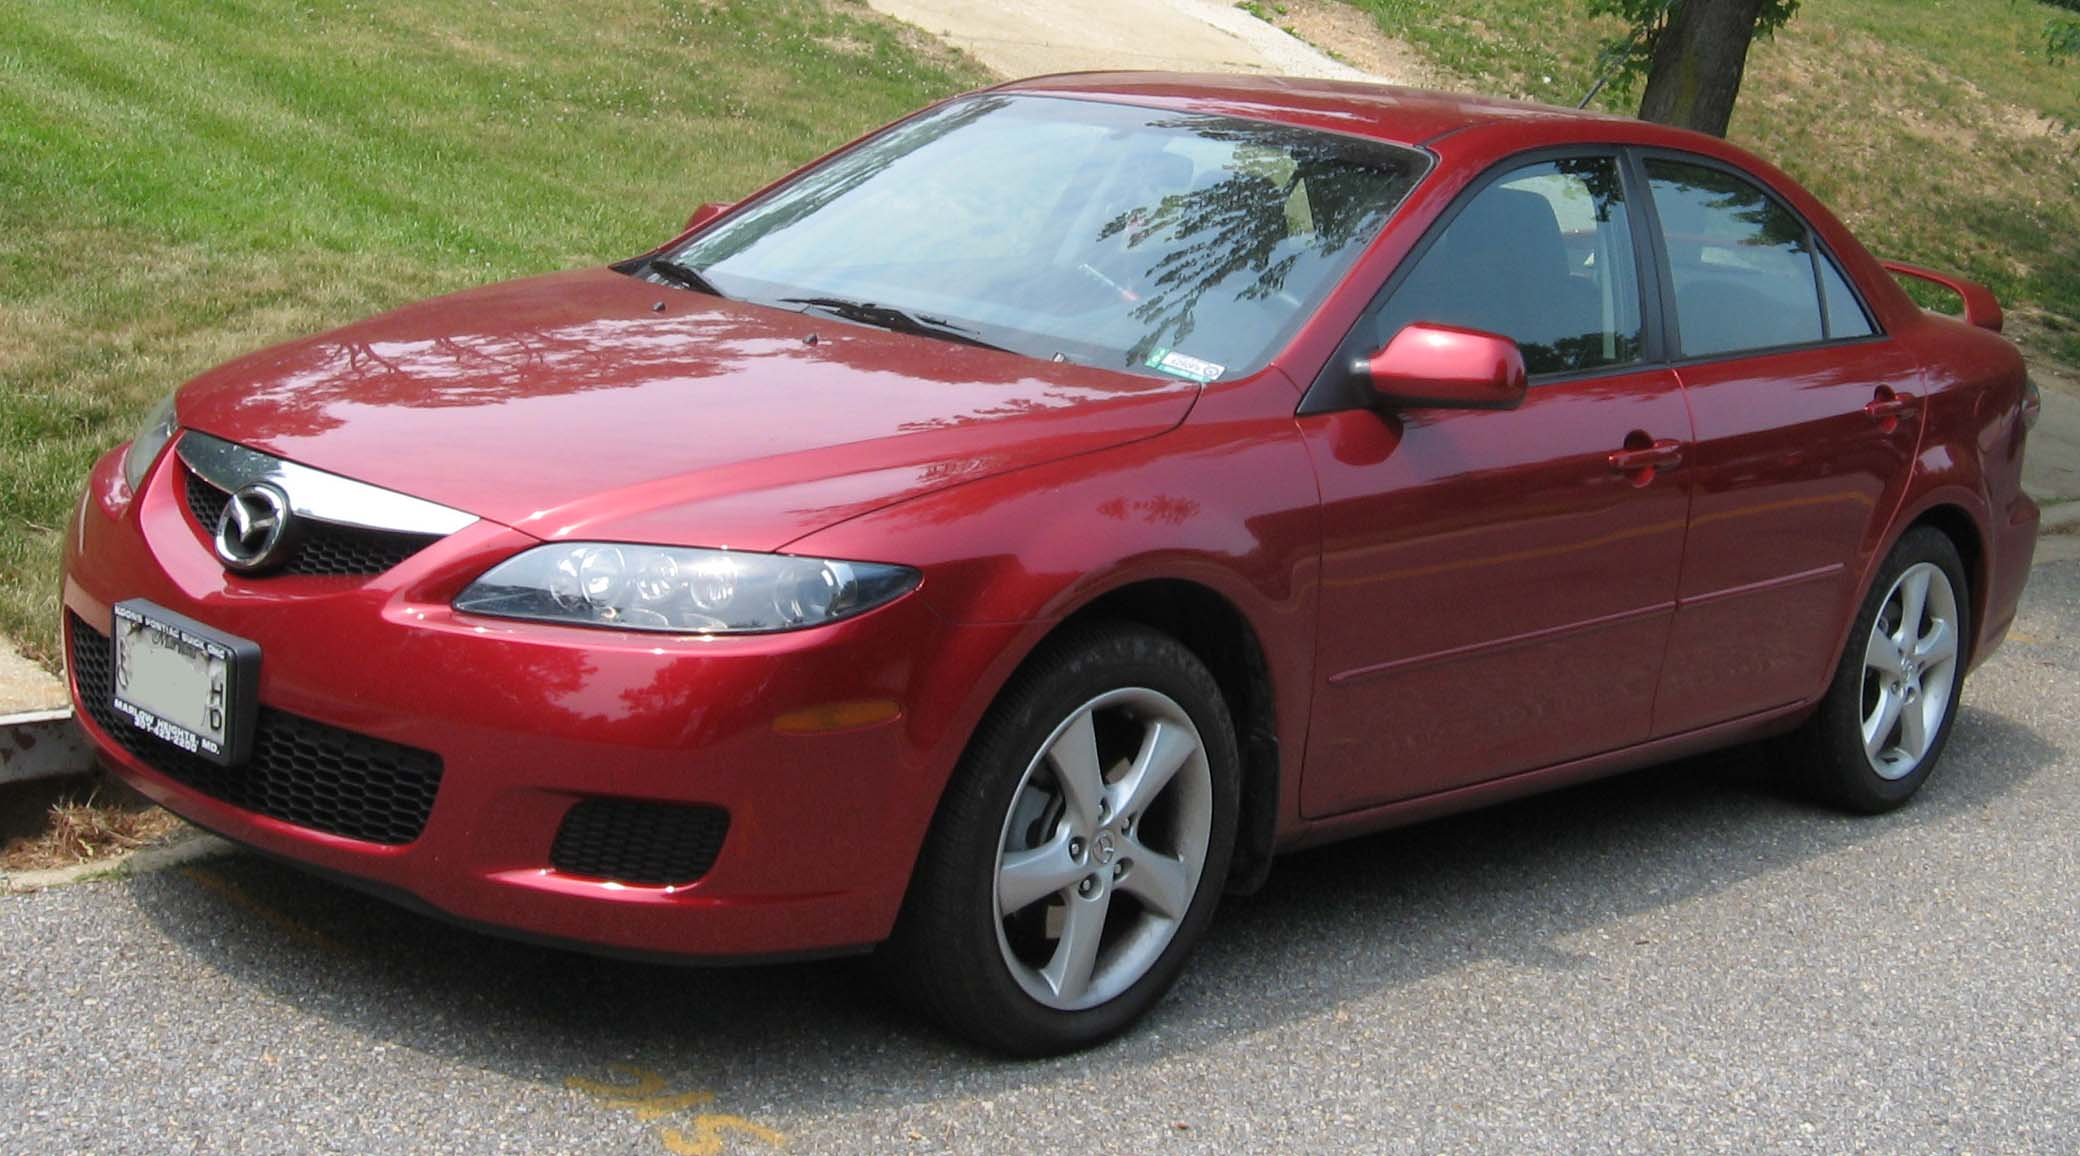 Mazda 626 2006 Review Amazing Pictures And Images Look At The Car